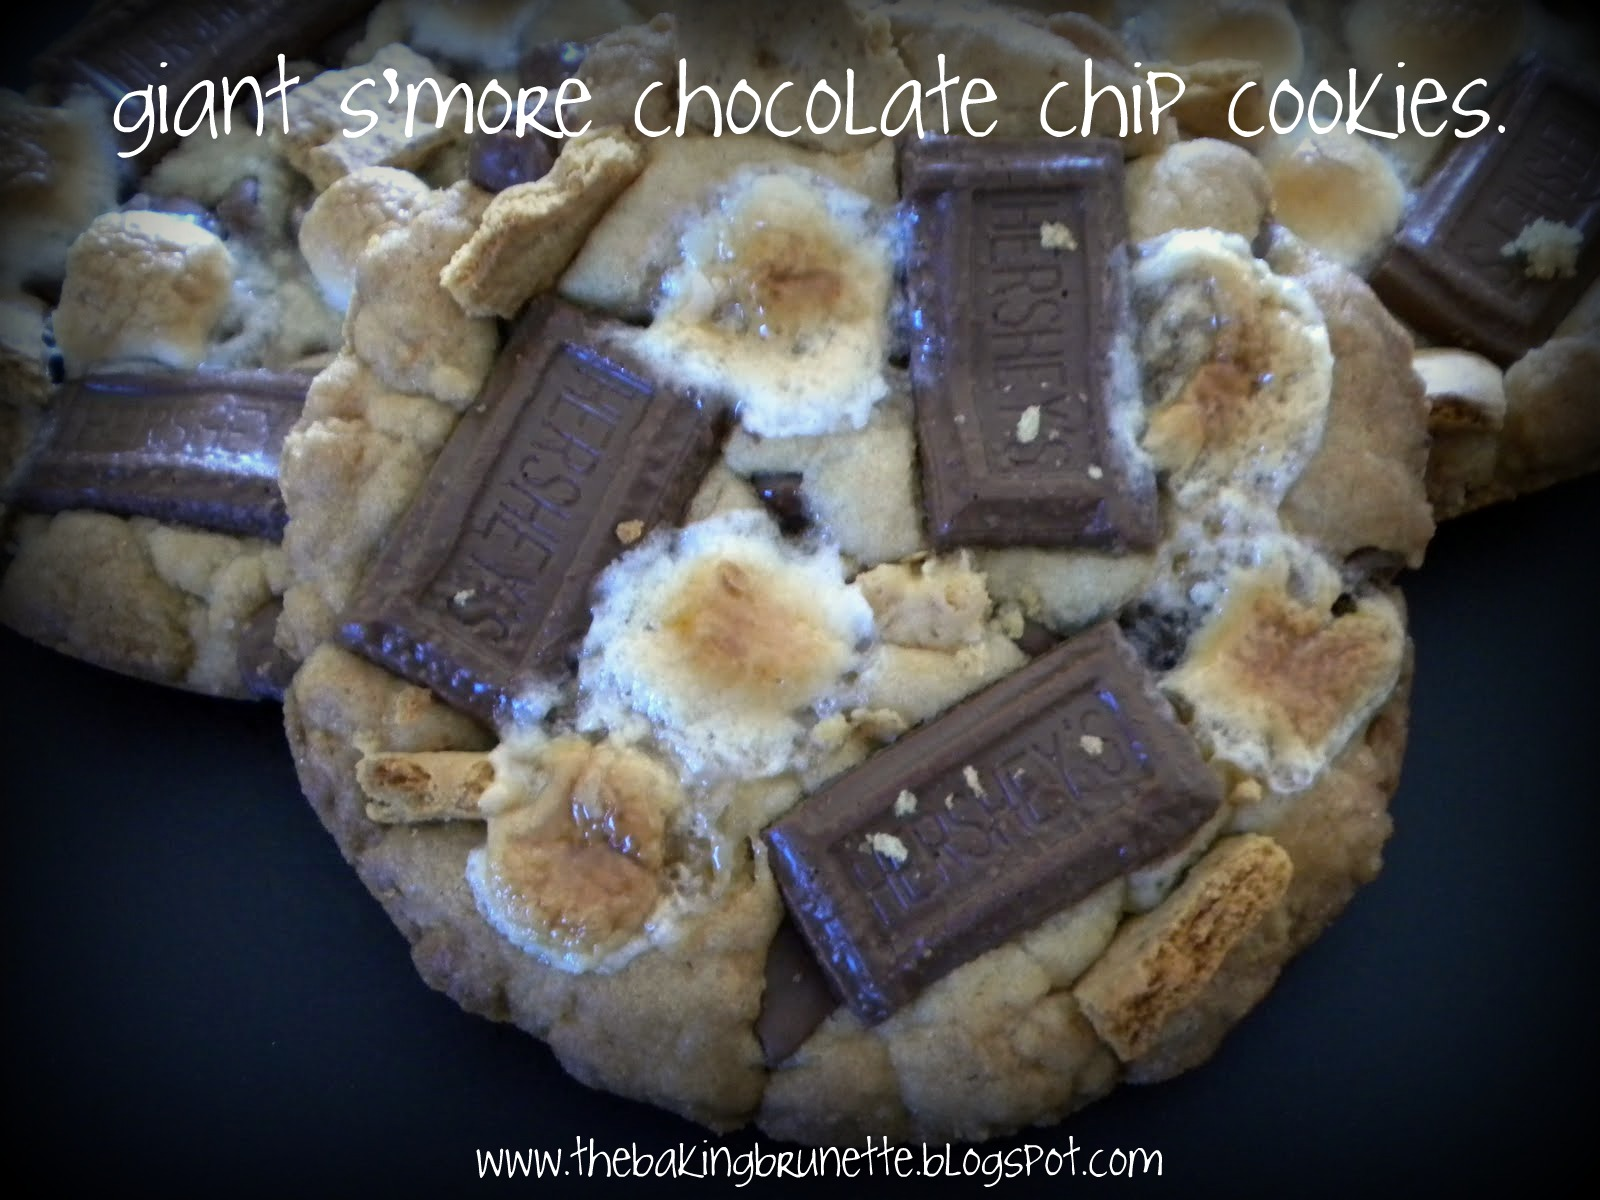 the baking brunette: giant s'more chocolate chip cookies.